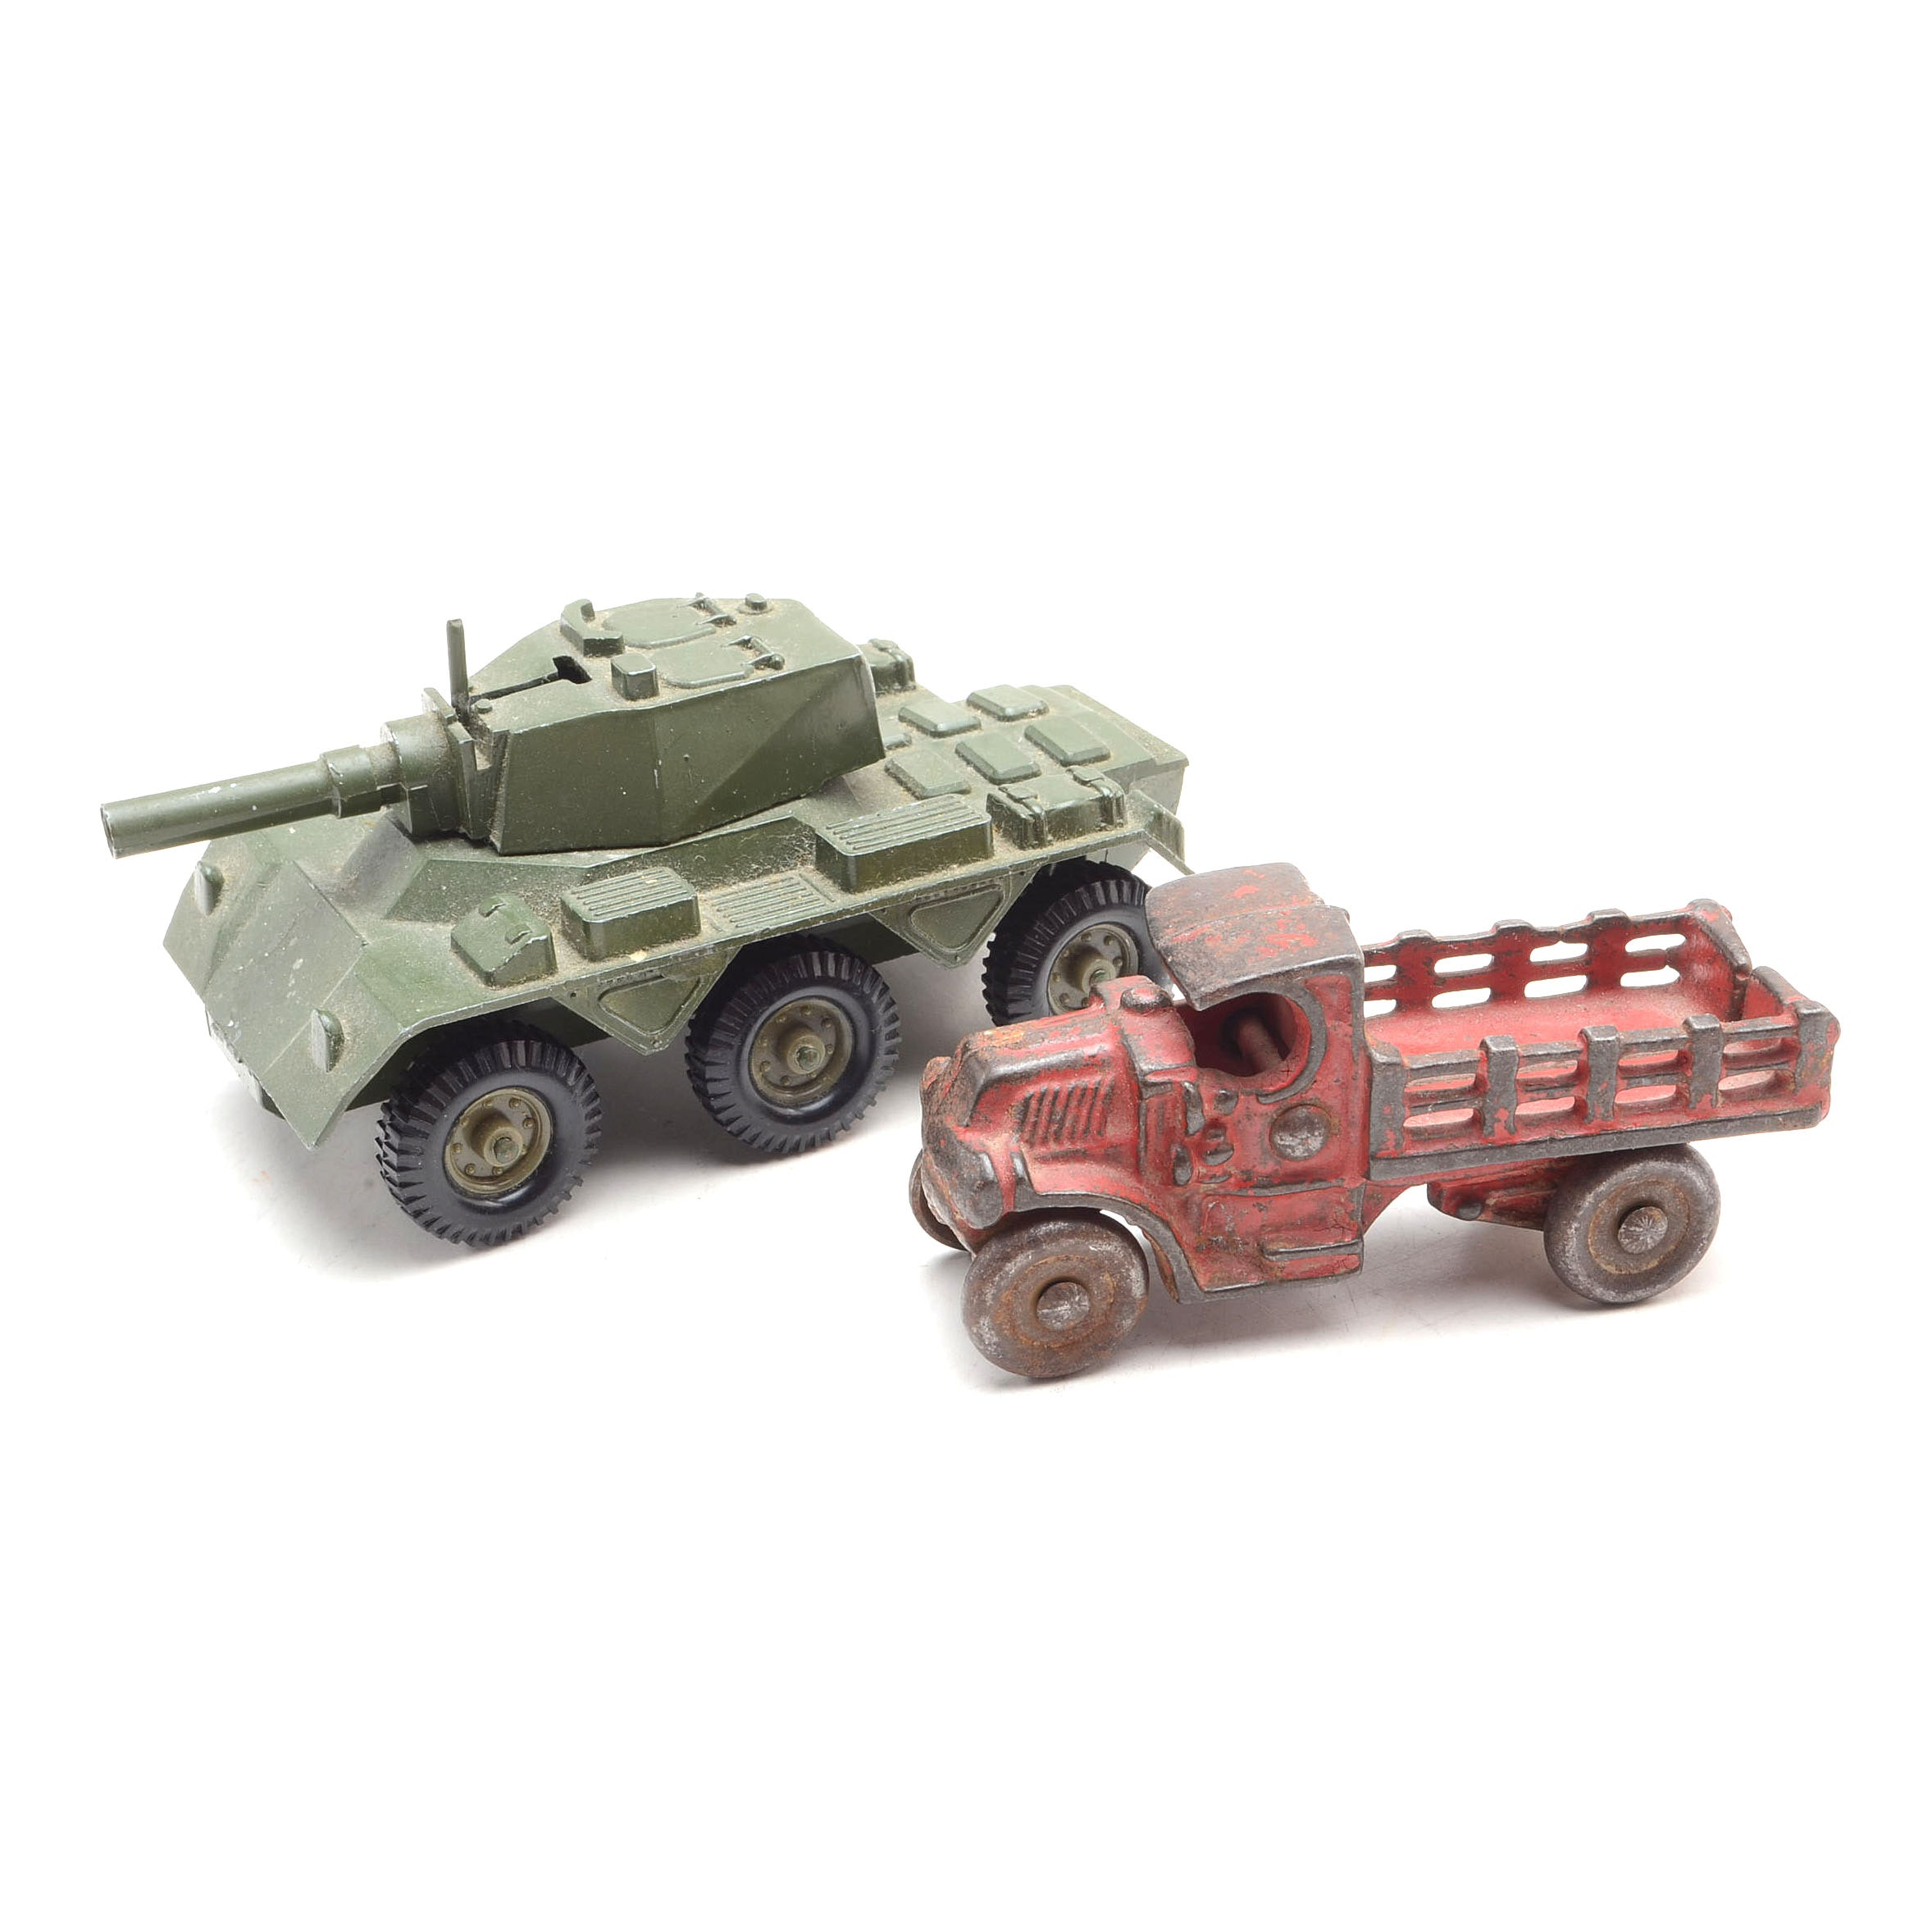 Vintage Die Cast Truck and Army Tank